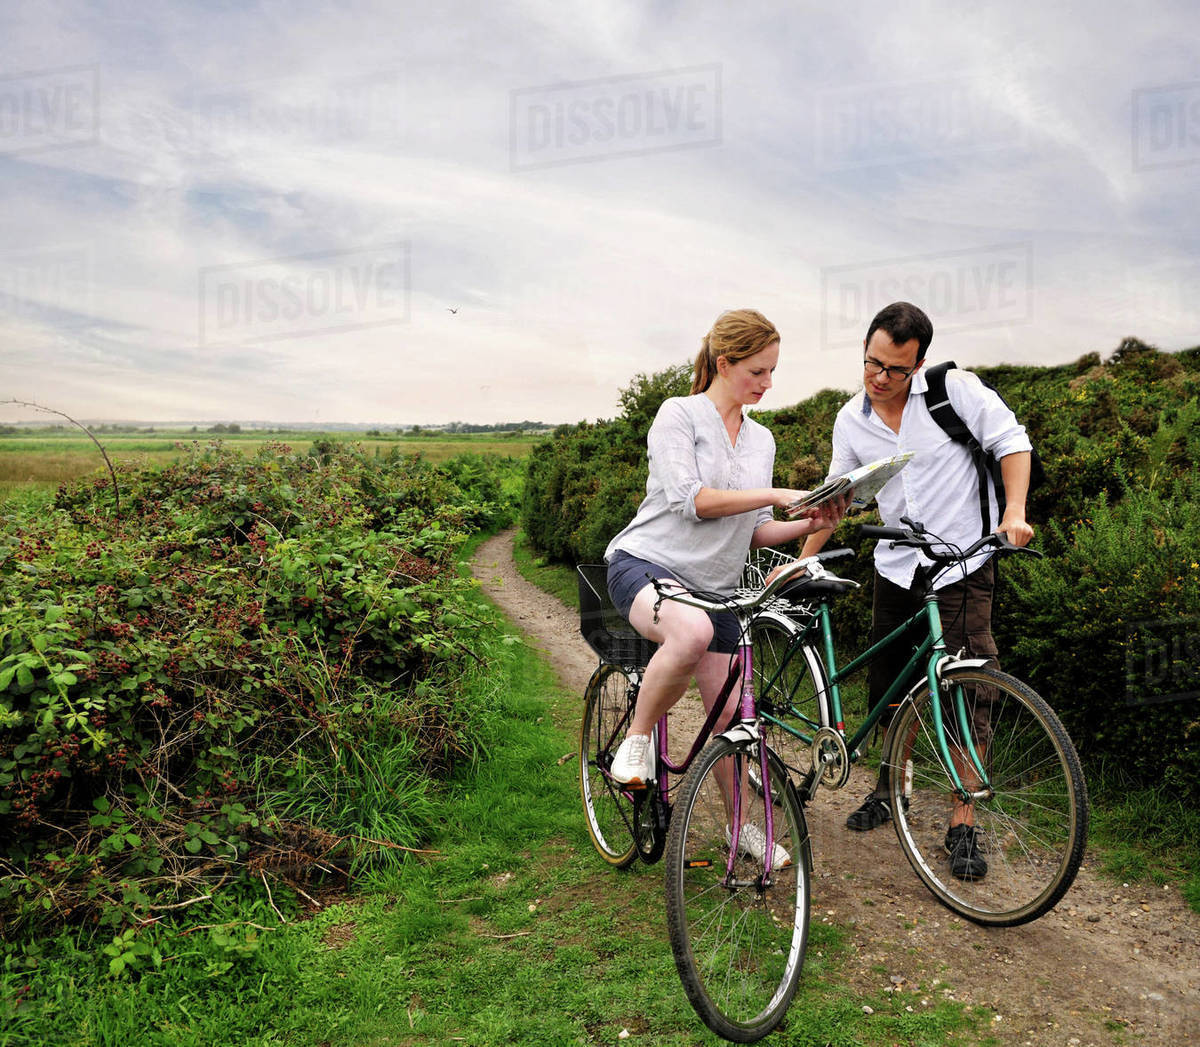 Mid adult cycling couple on rural dirt track looking at map, Southwold, Suffolk, UK Royalty-free stock photo